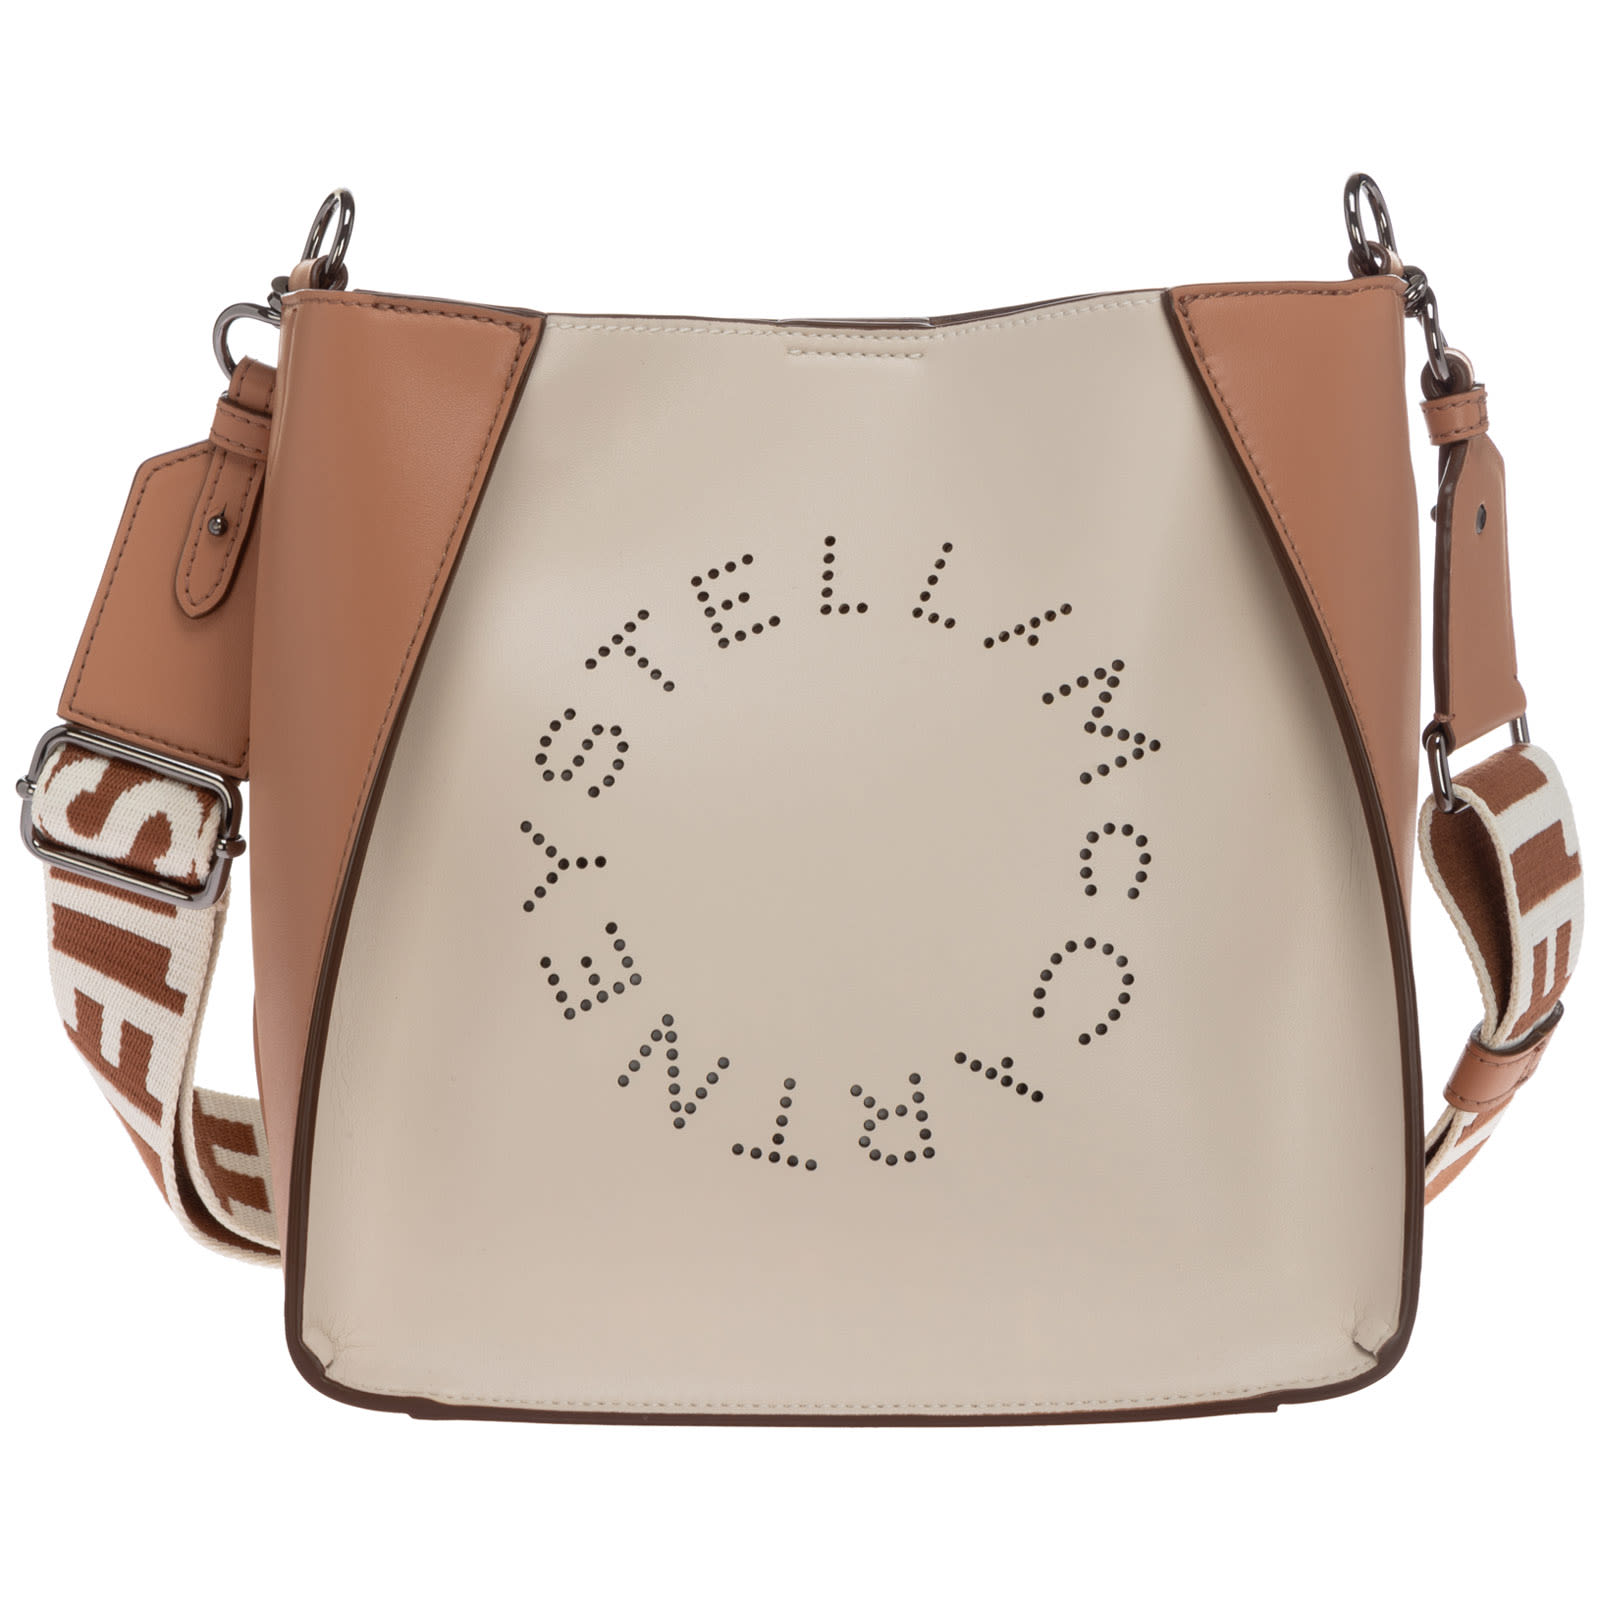 Stella Mccartney STELLA LOGO BUCKET BAG